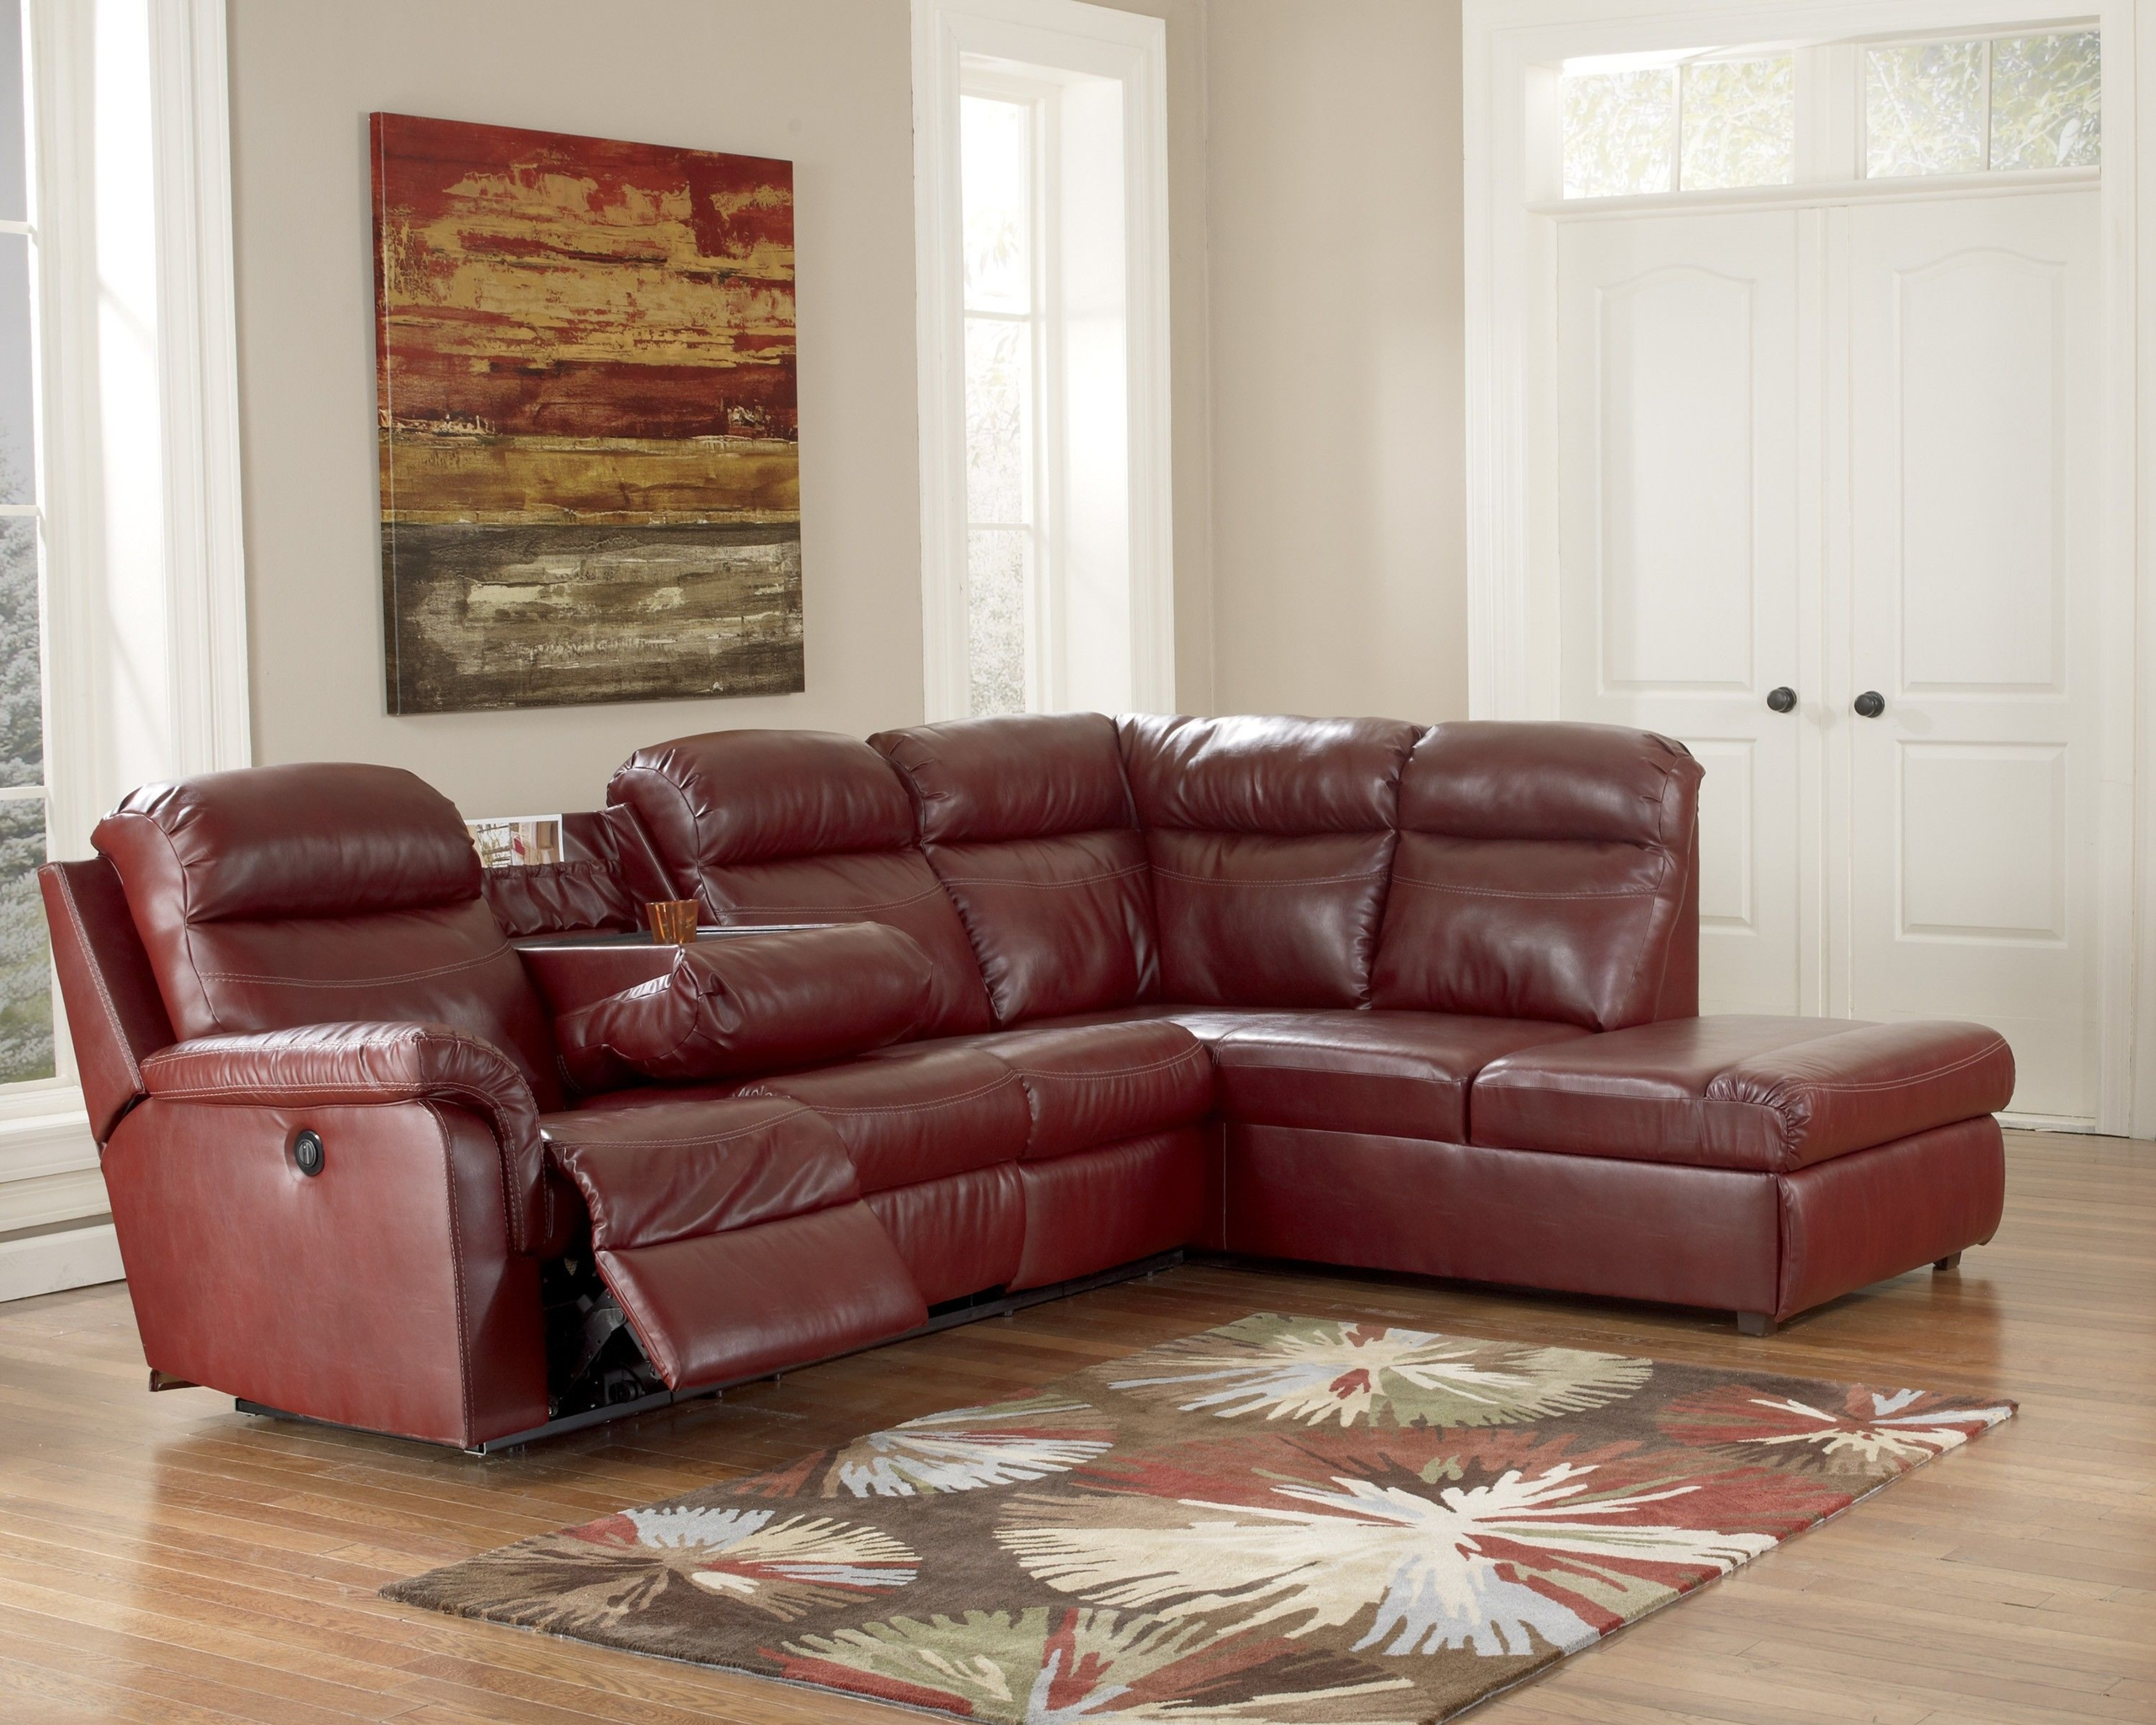 sectional sofas recliners click clack sofa bed reviews small with recliner visual hunt chocolate